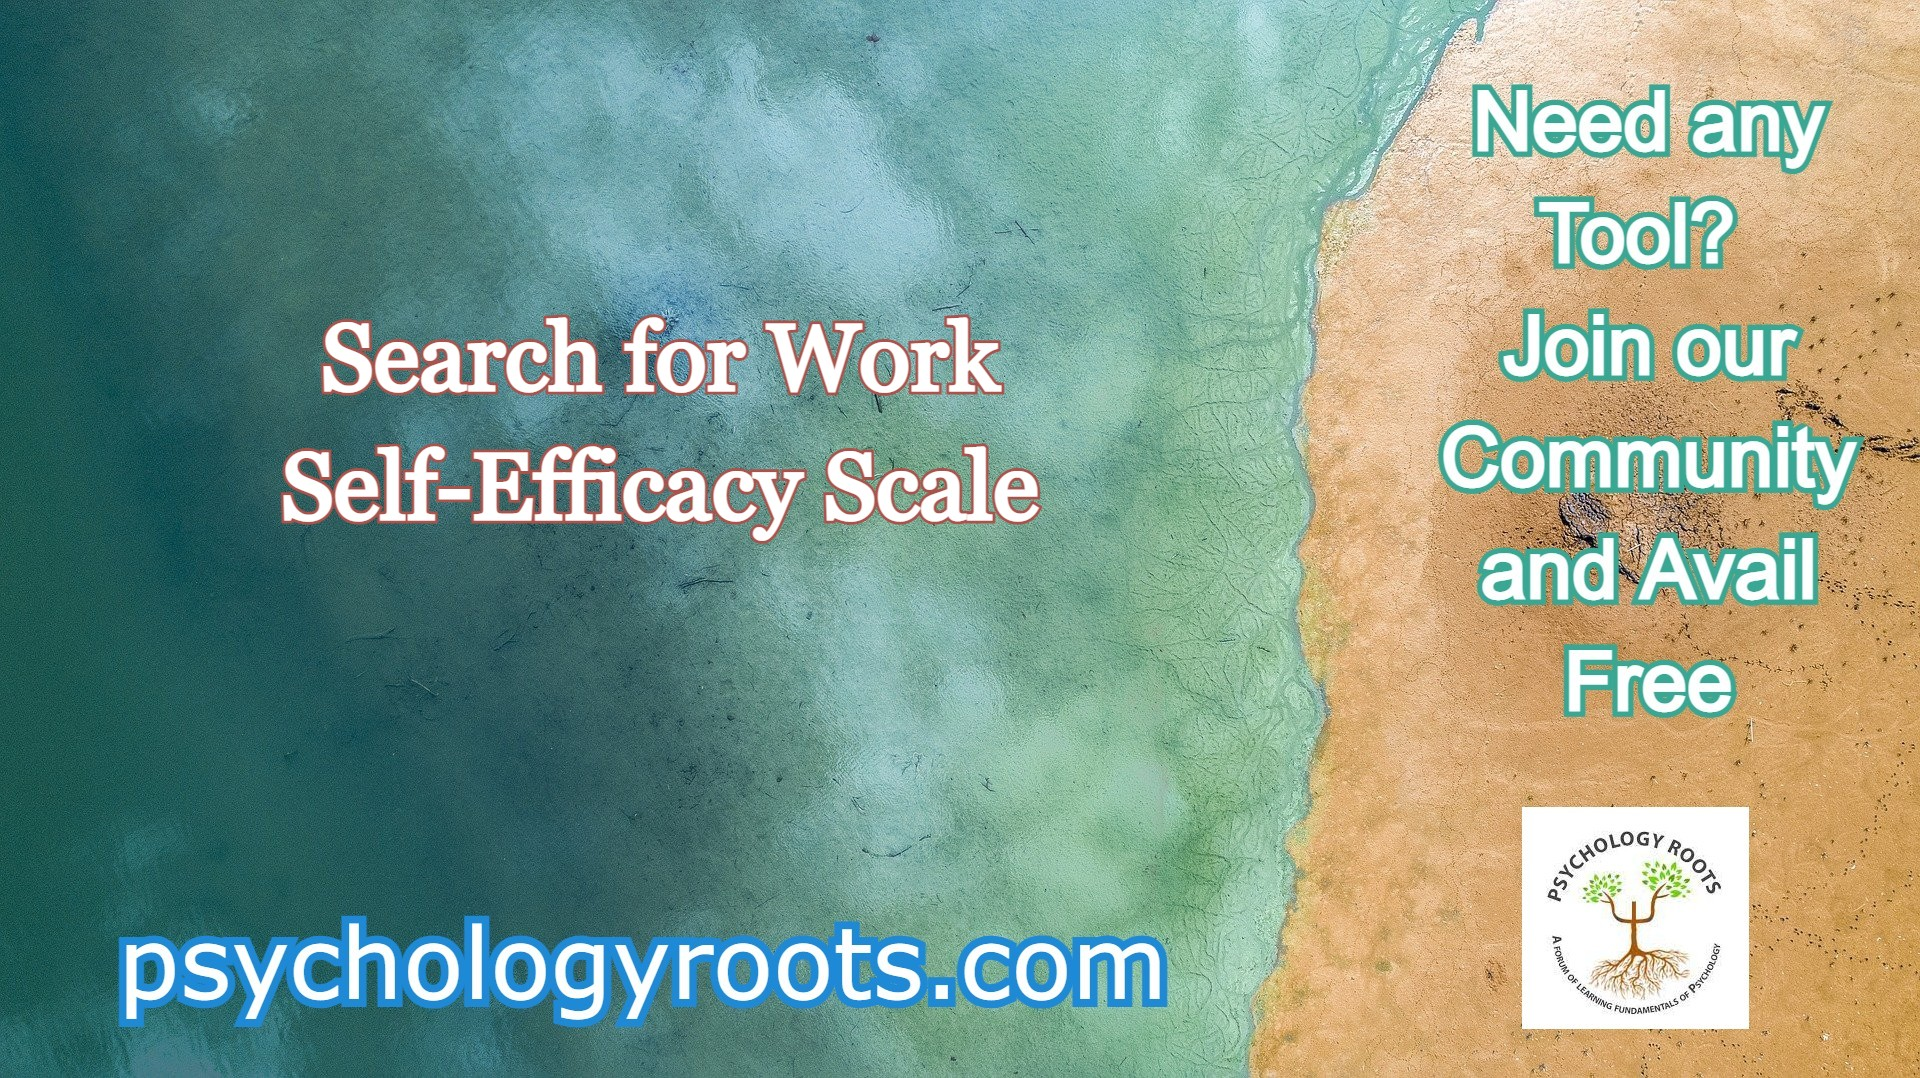 Search for Work Self-Efficacy Scale